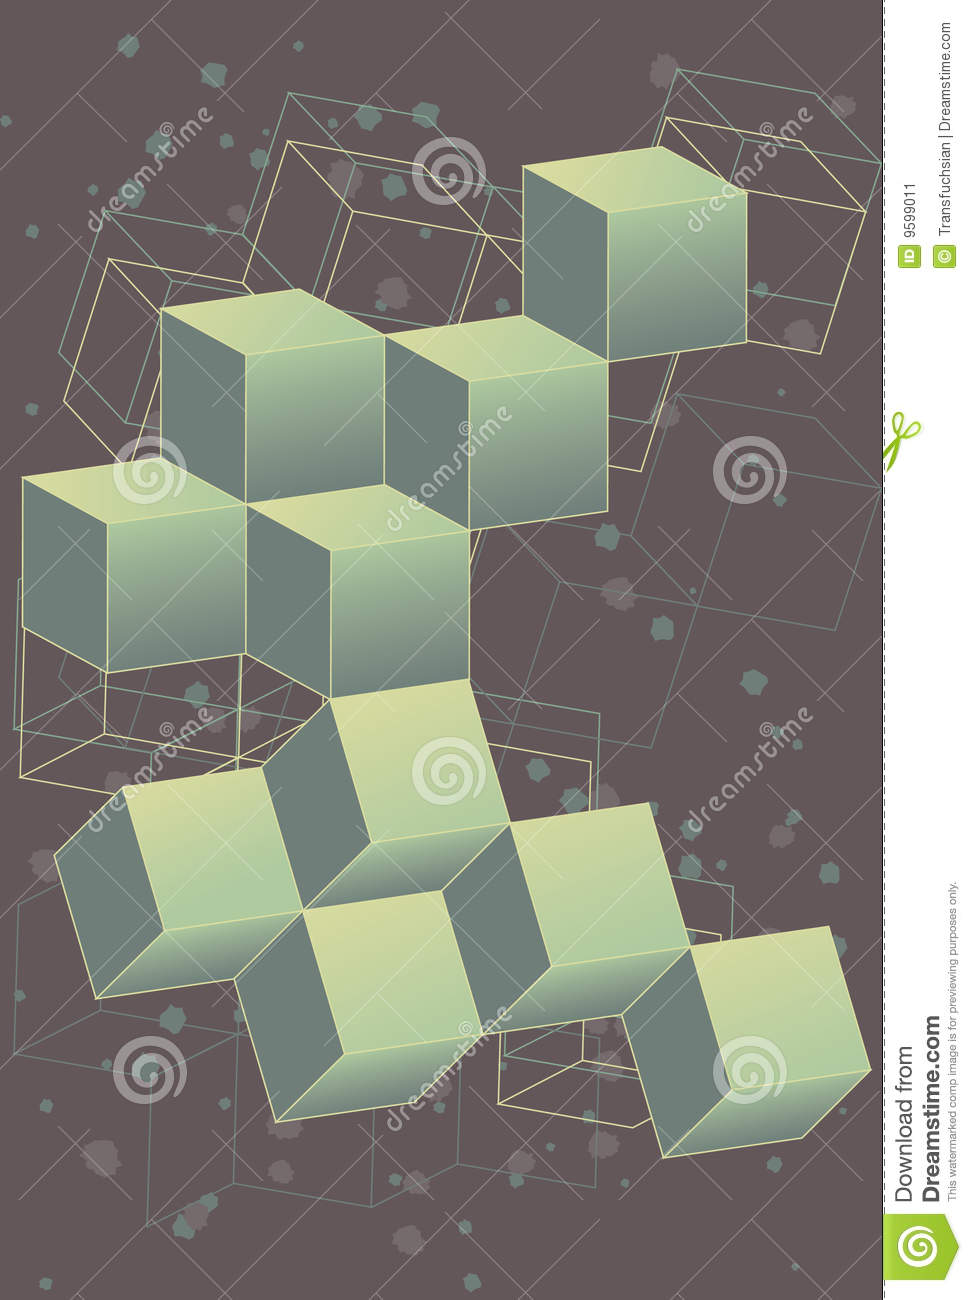 3 dimensional retro outer space cubes stock image image for 3d outer space map